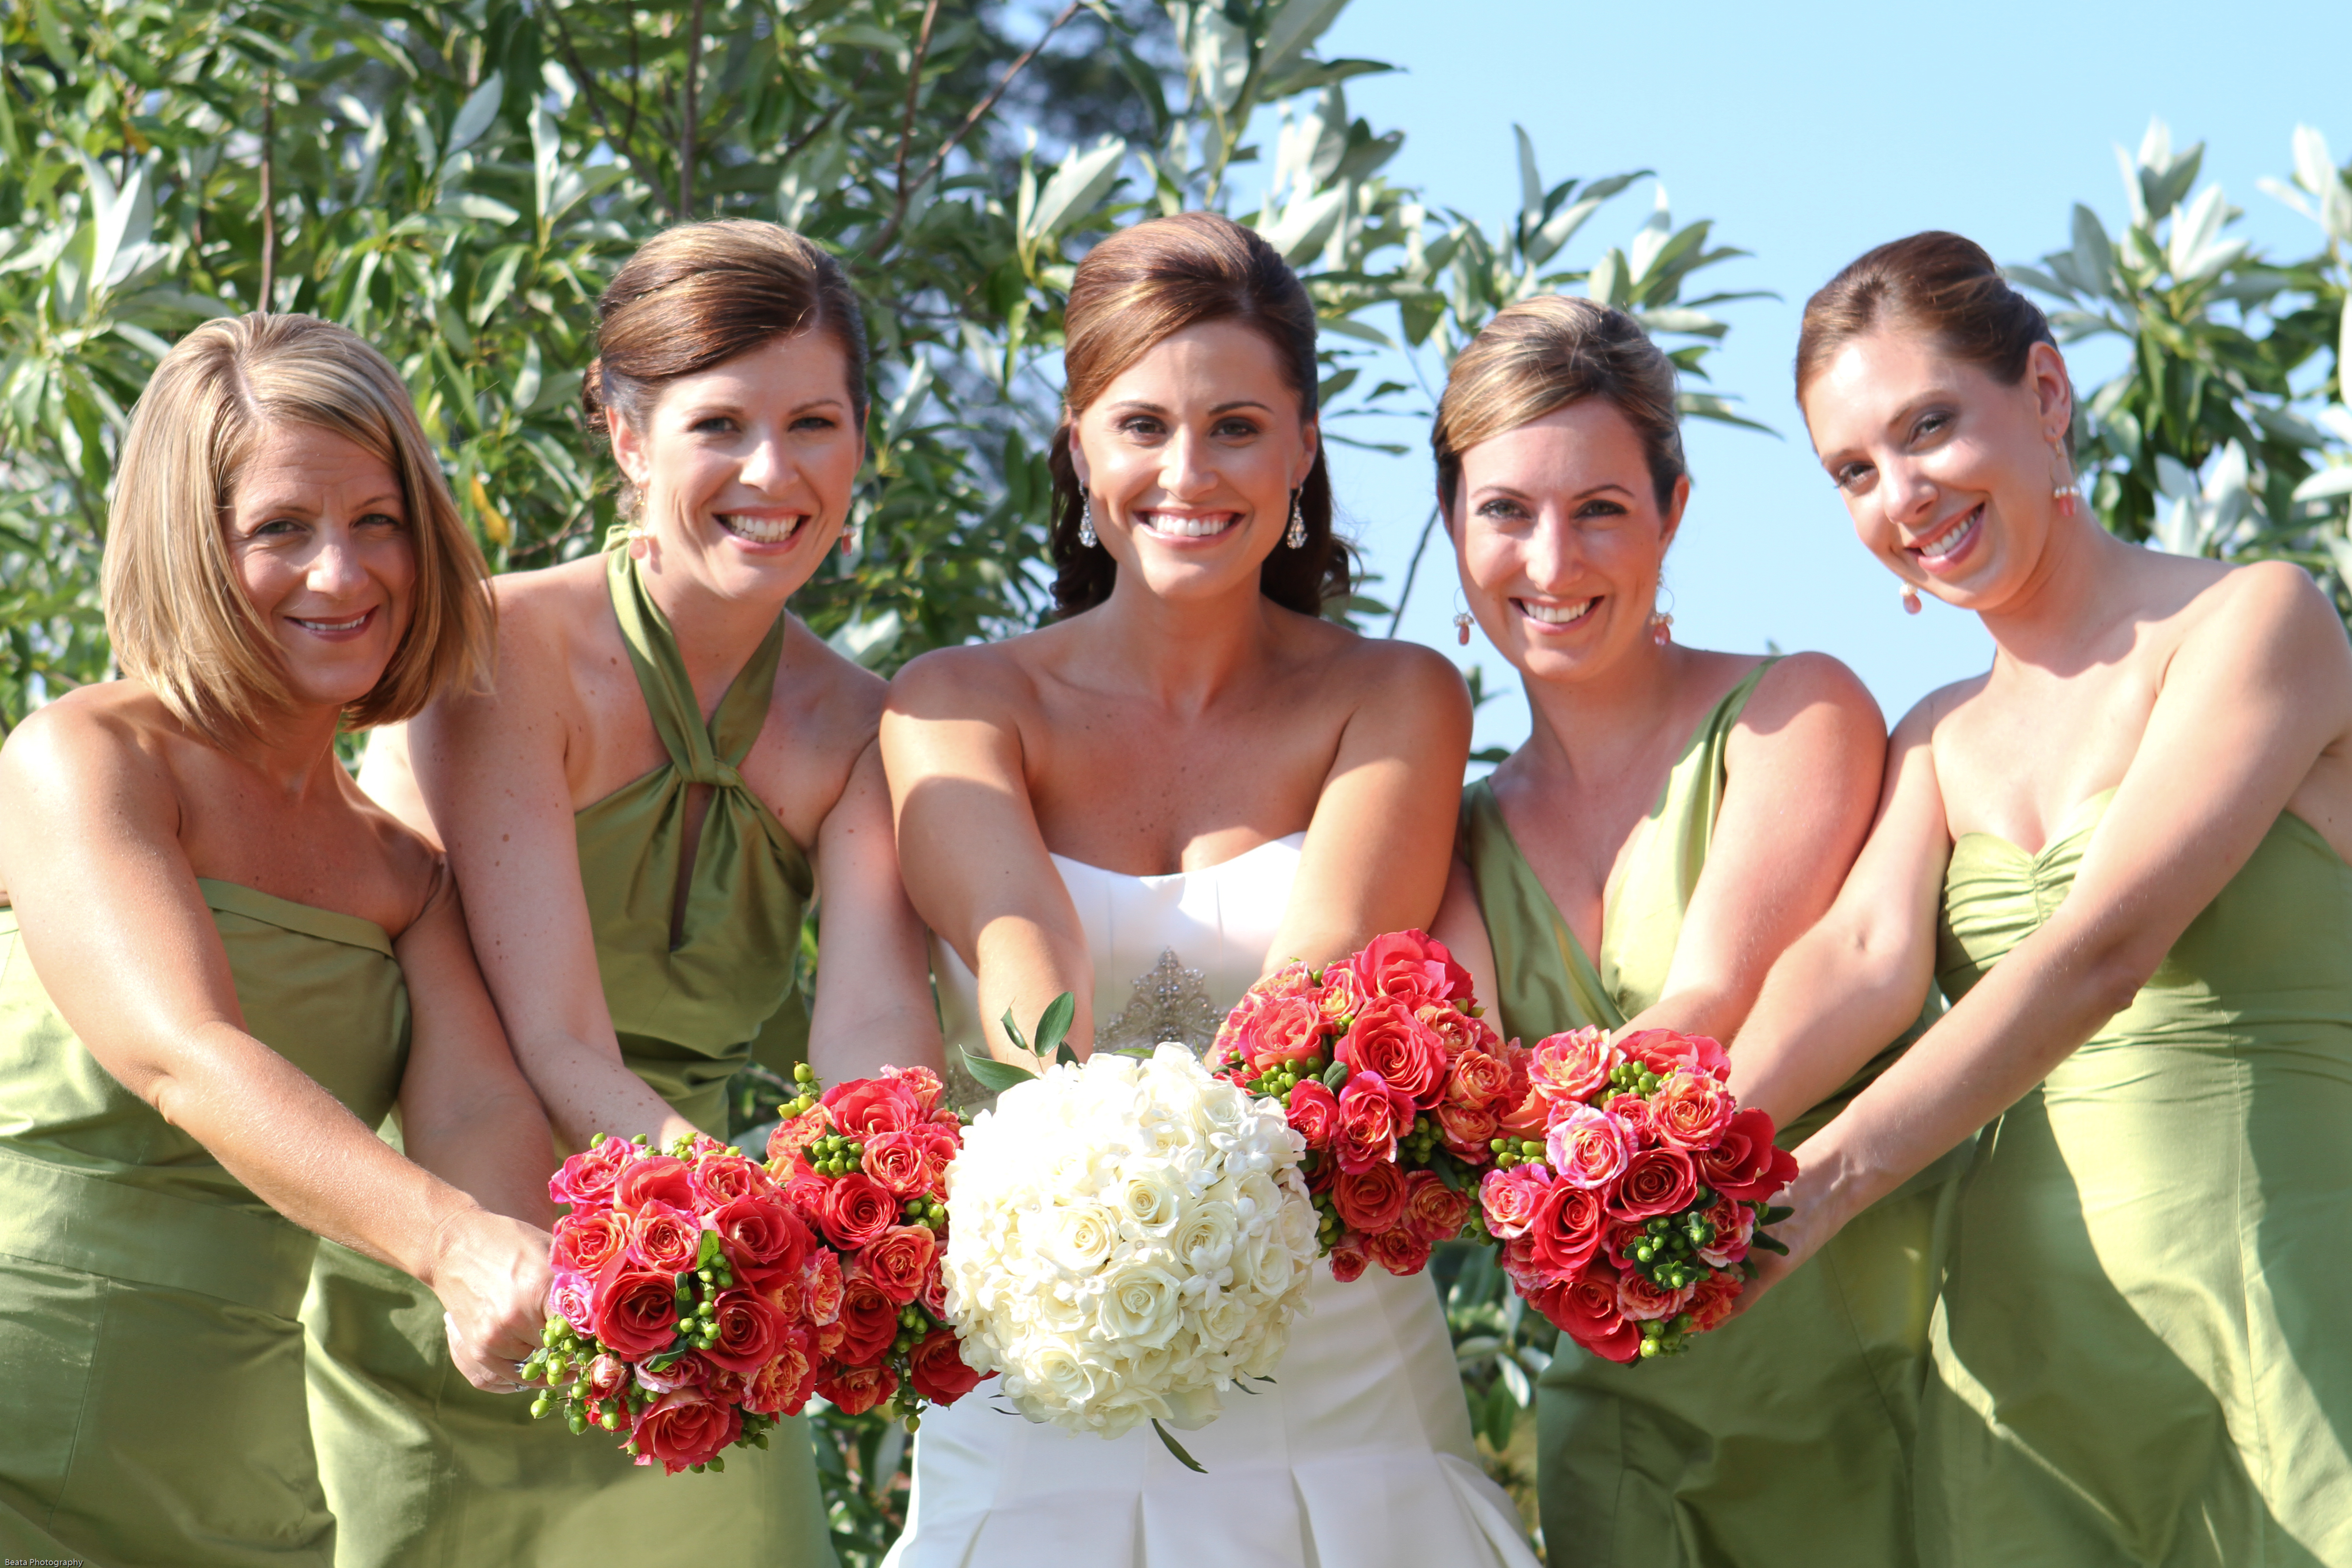 Flowers & Decor, Bridesmaids, Bridesmaids Dresses, Fashion, green, Bridesmaid Bouquets, Flowers, Dresses, Coral, Flower Wedding Dresses